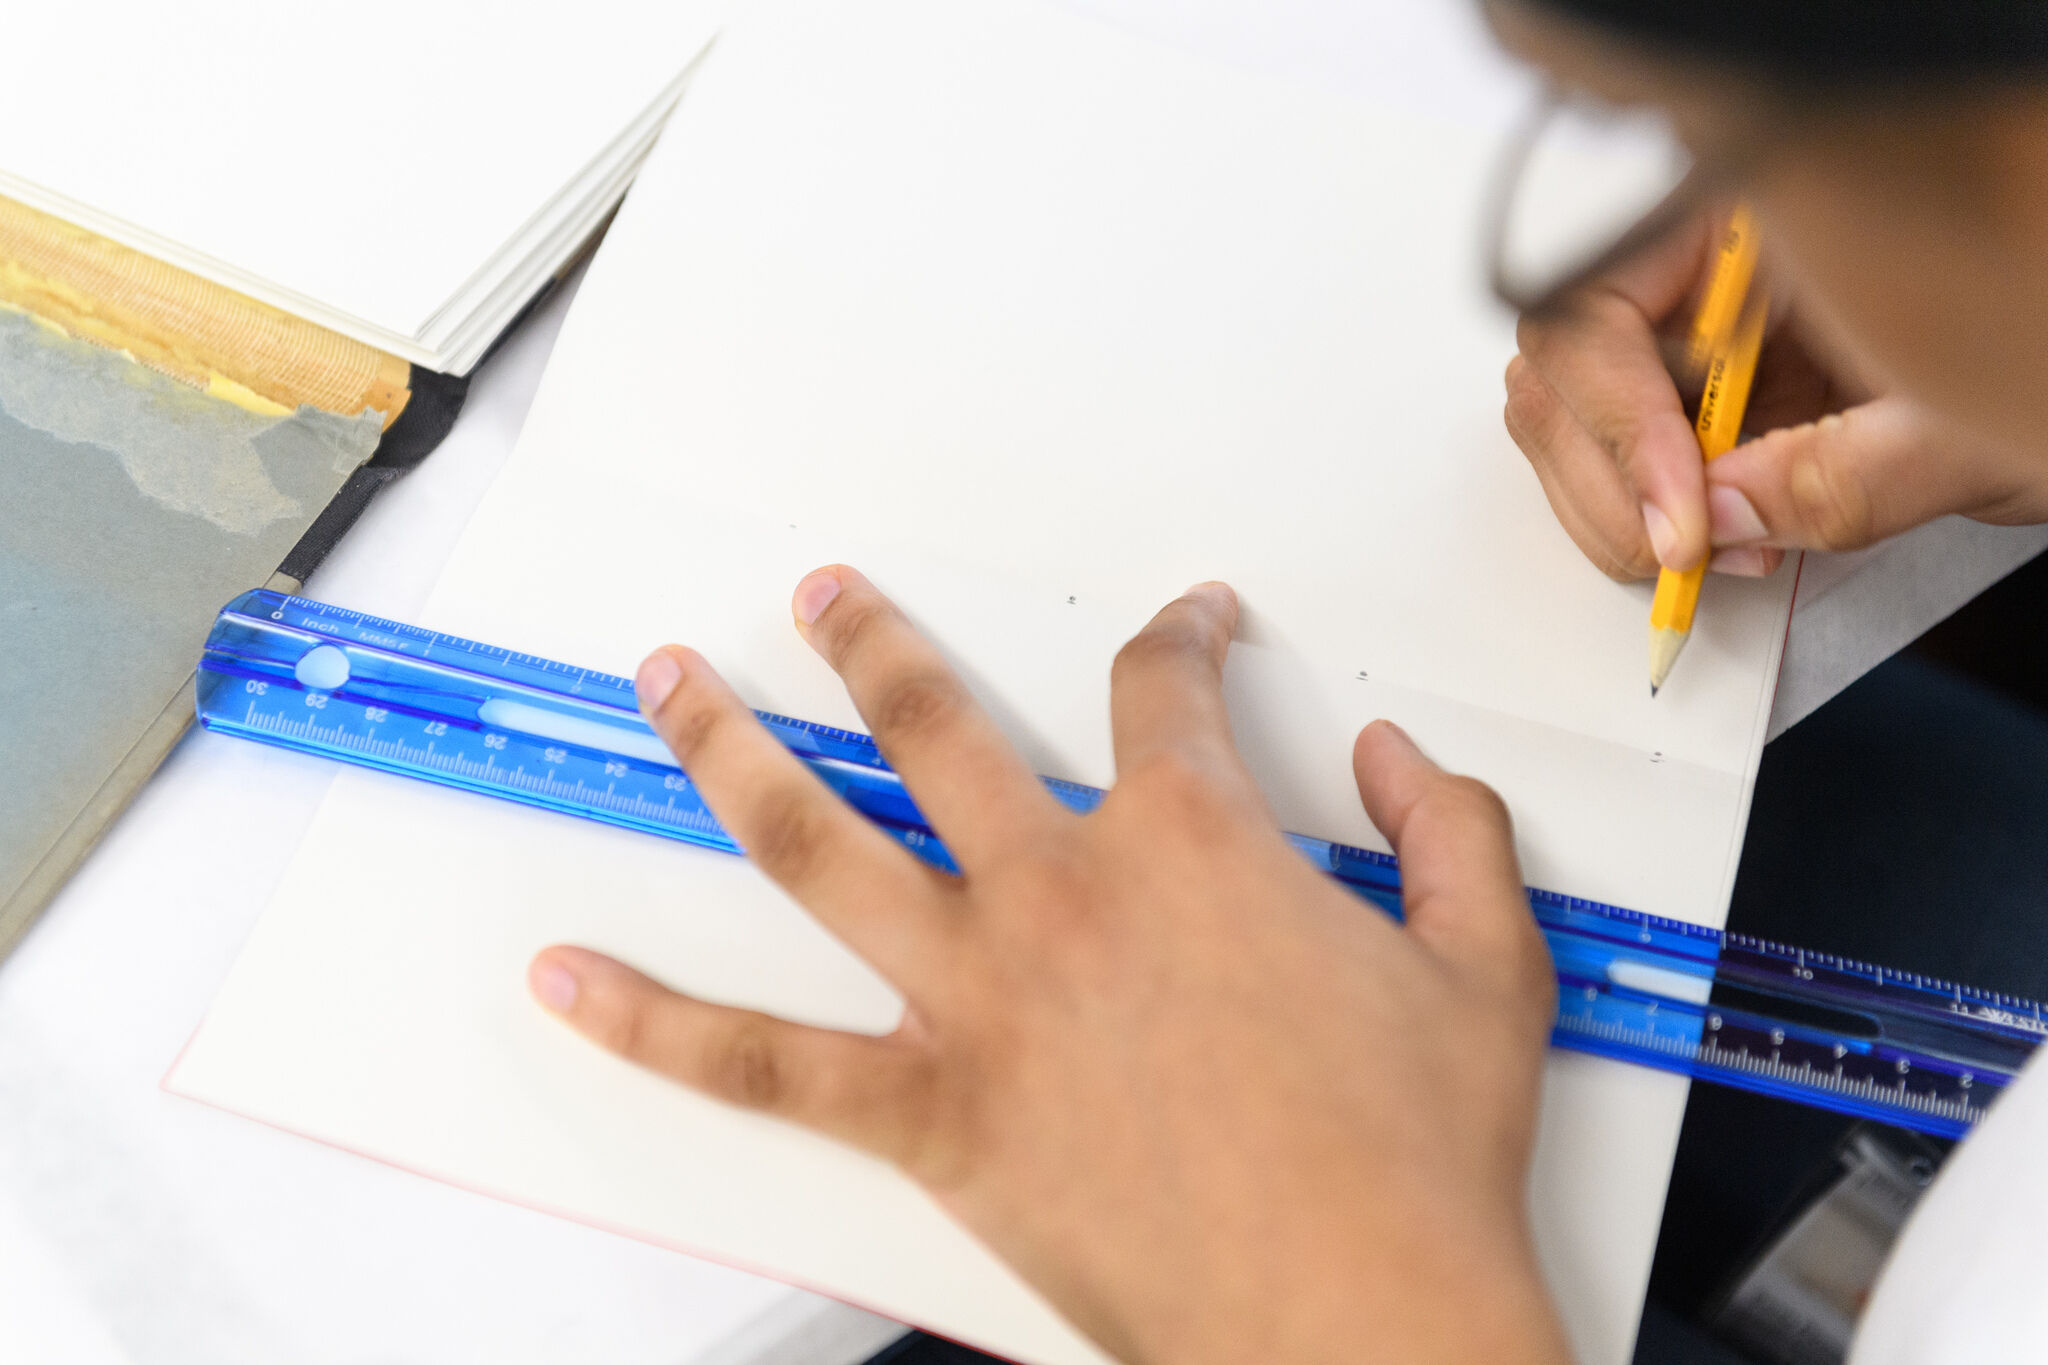 A young person's hand holds a ruler over a page as they use a pencil